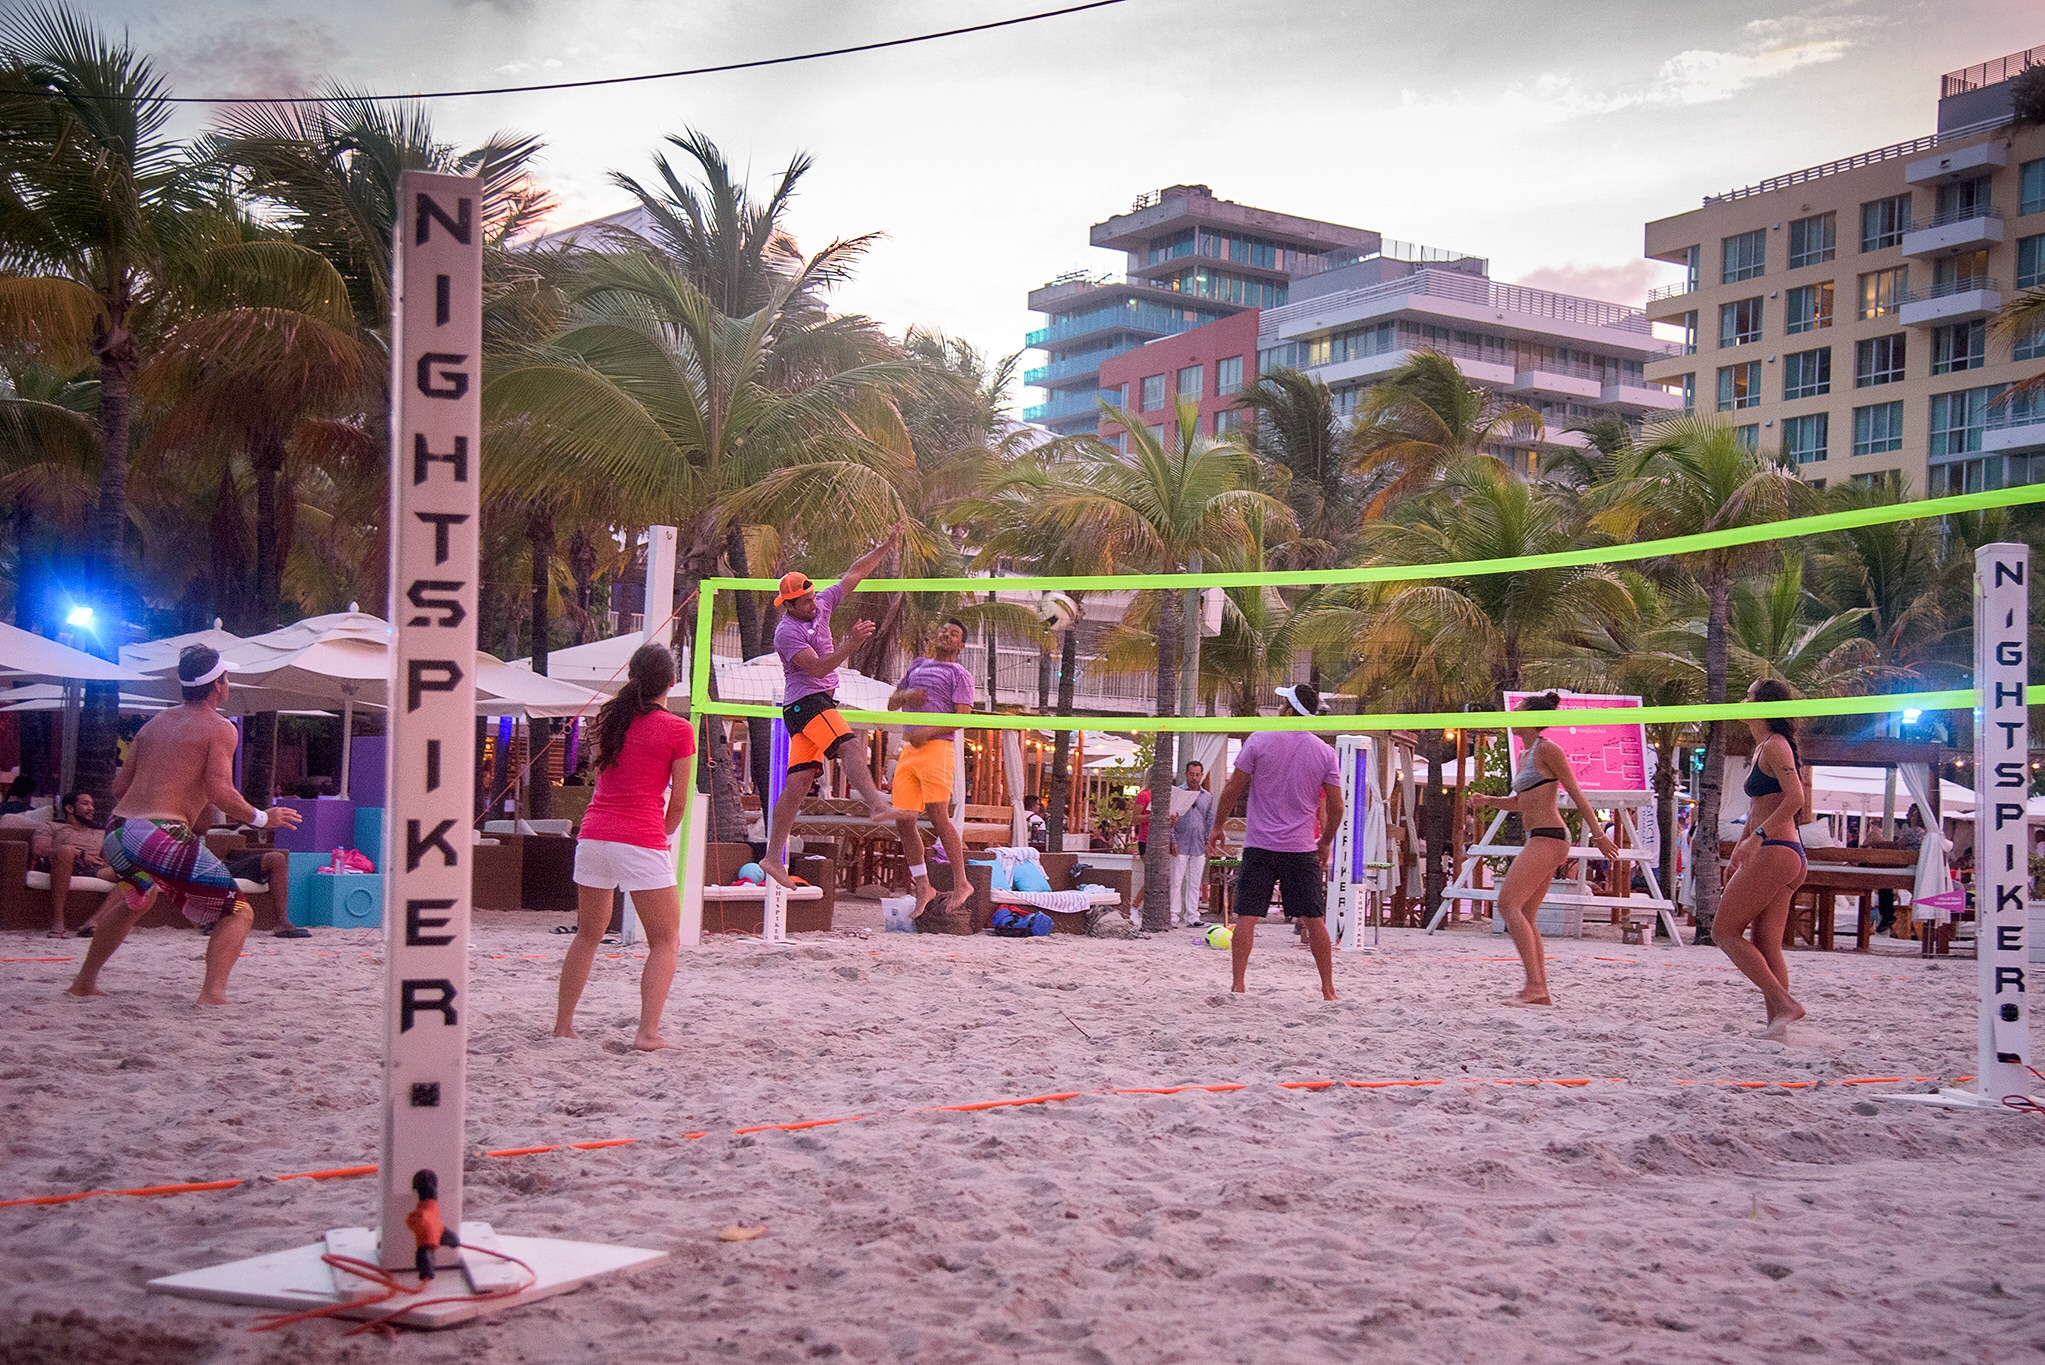 Sunday night beach volleyball at courts by South Beach amped up with lights and music and a bar!